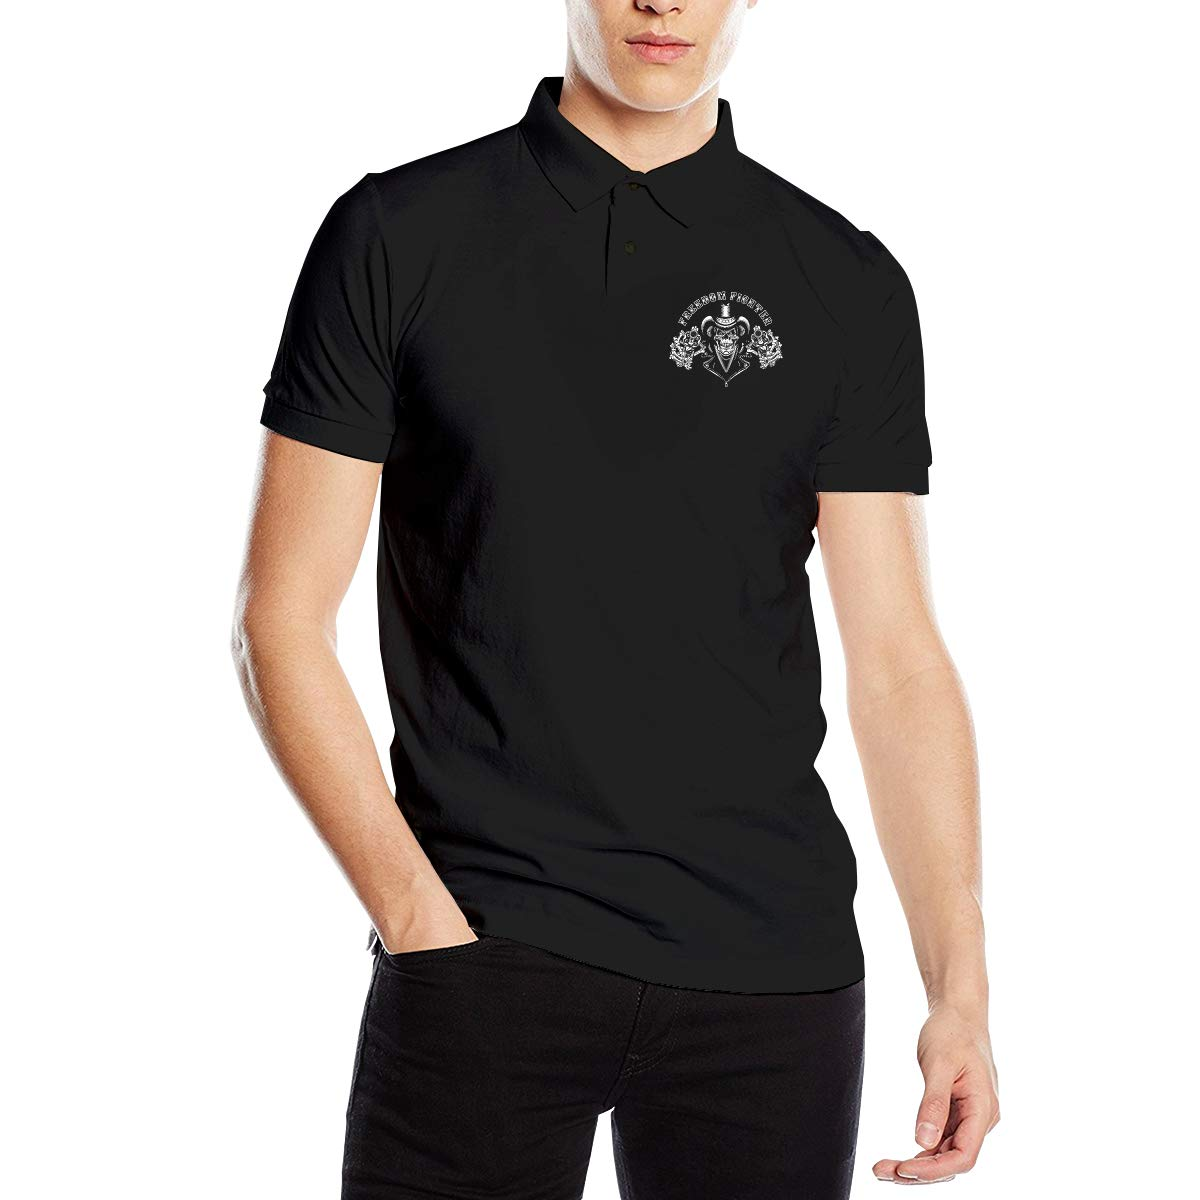 Cheshidaqiche Mens Personalized Casual Cowboy Skull and Revolver Short Sleeve Funny Polo Shirts Black